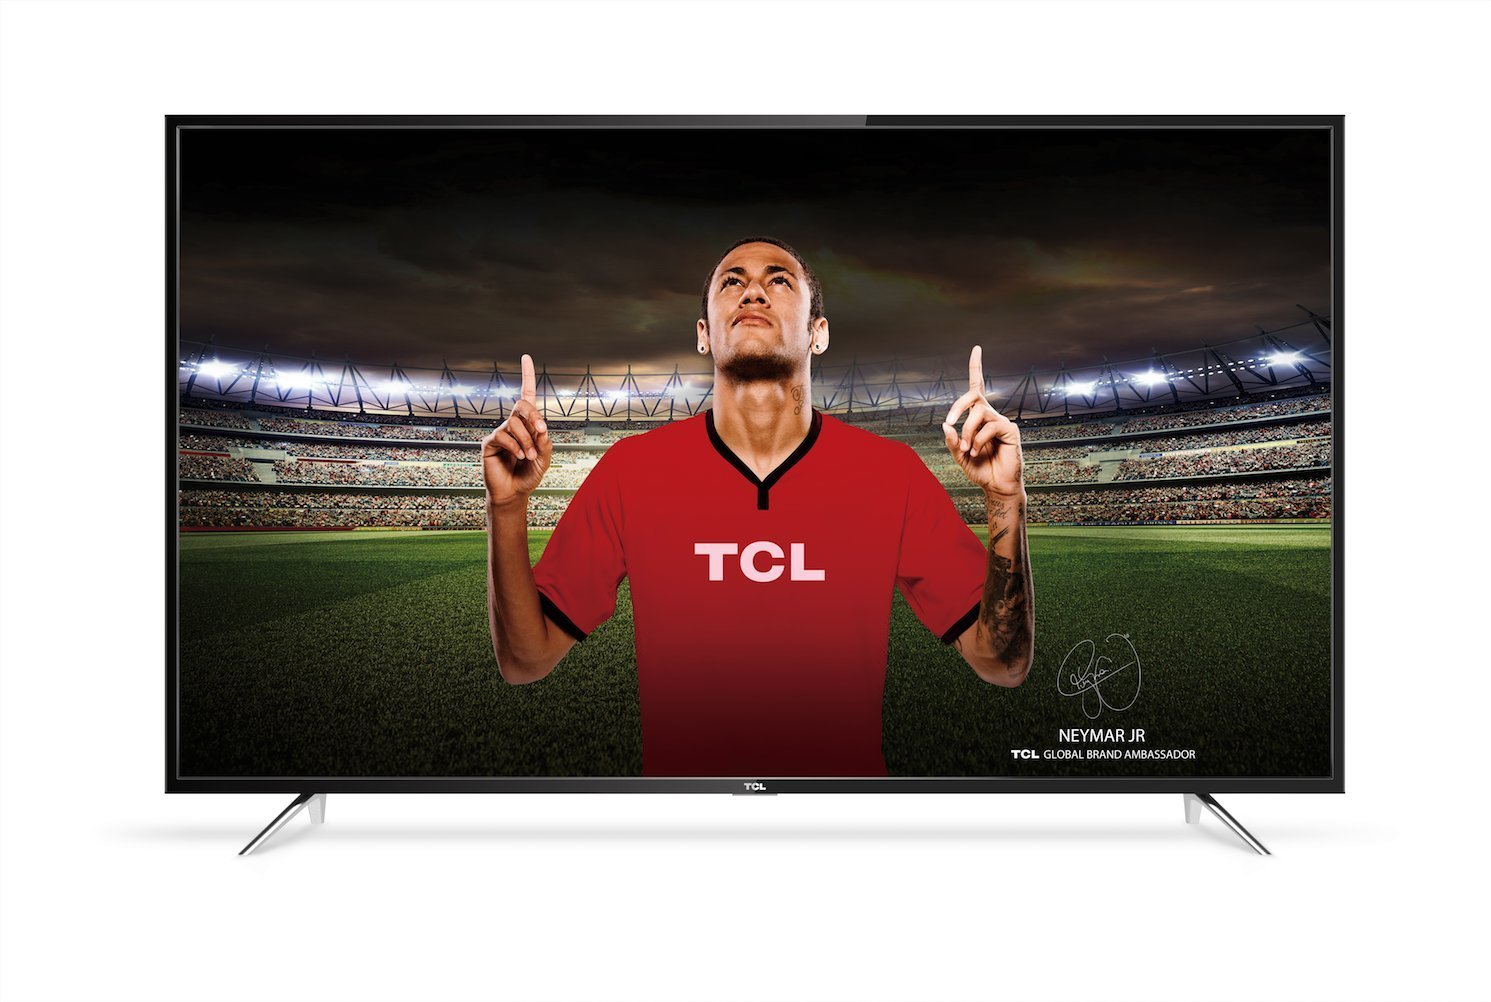 TCL 43DP608 43-inch TV deal